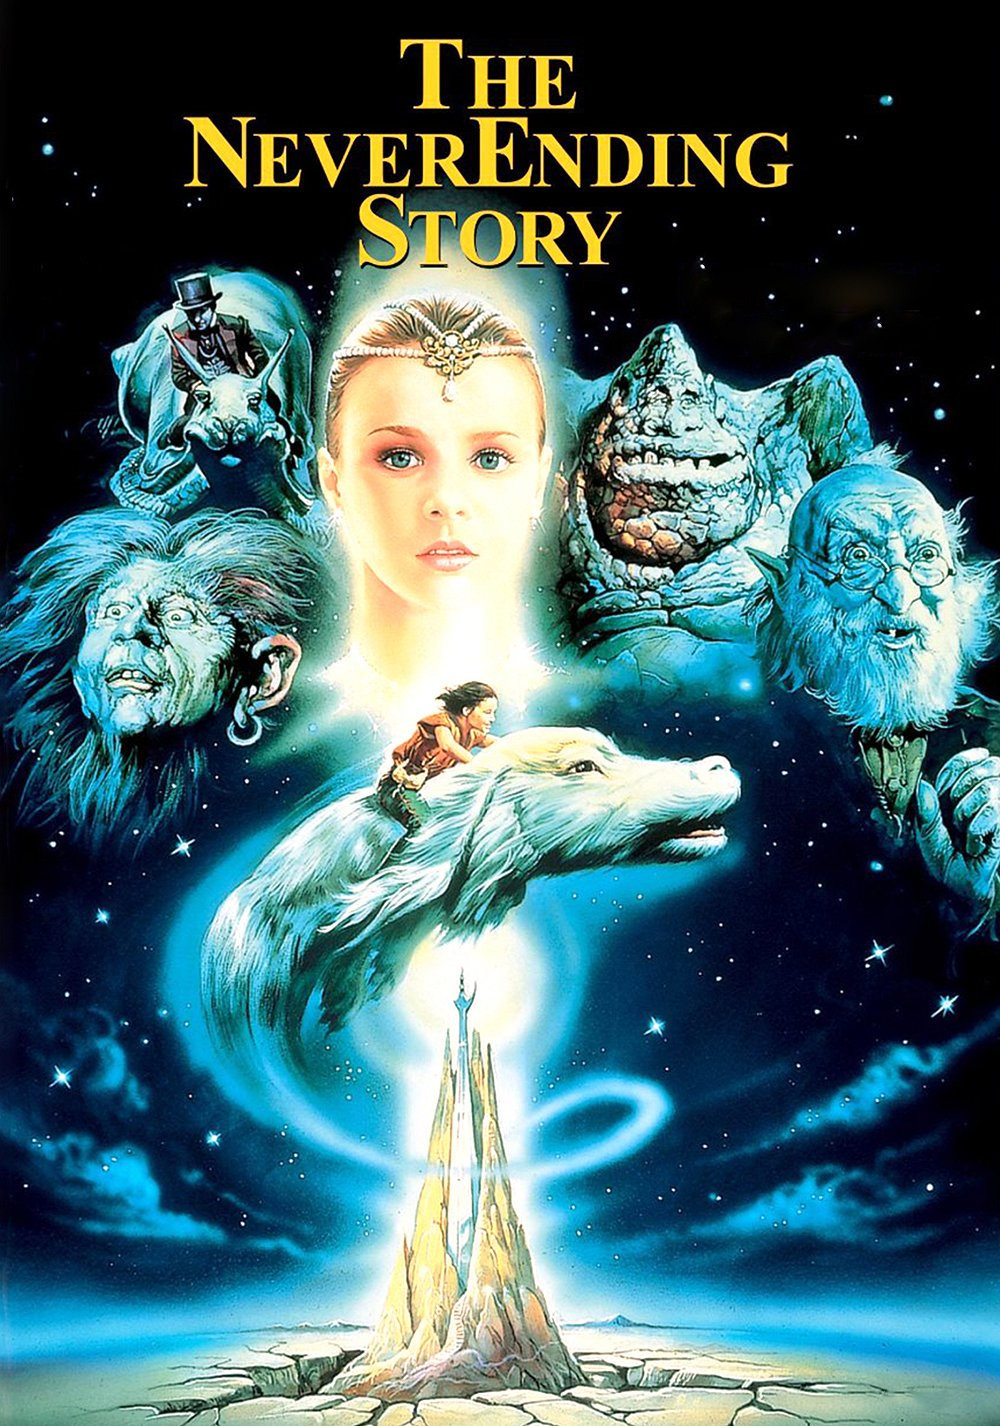 The NeverEnding Story (1984) Movie Poster Google image from https://fanart.tv/movie/34584/the-neverending-story/